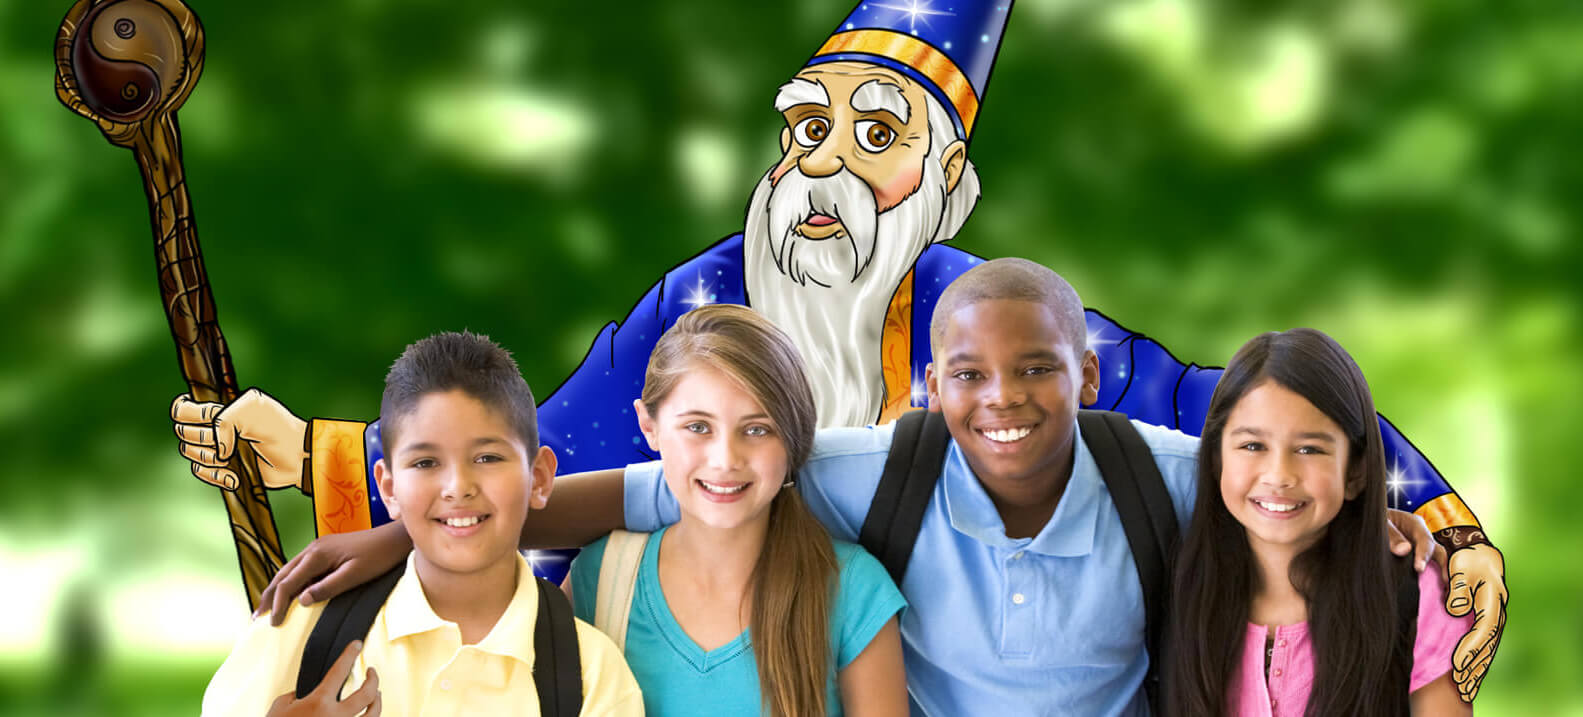 Wyatt the Wizard and children laughing together.